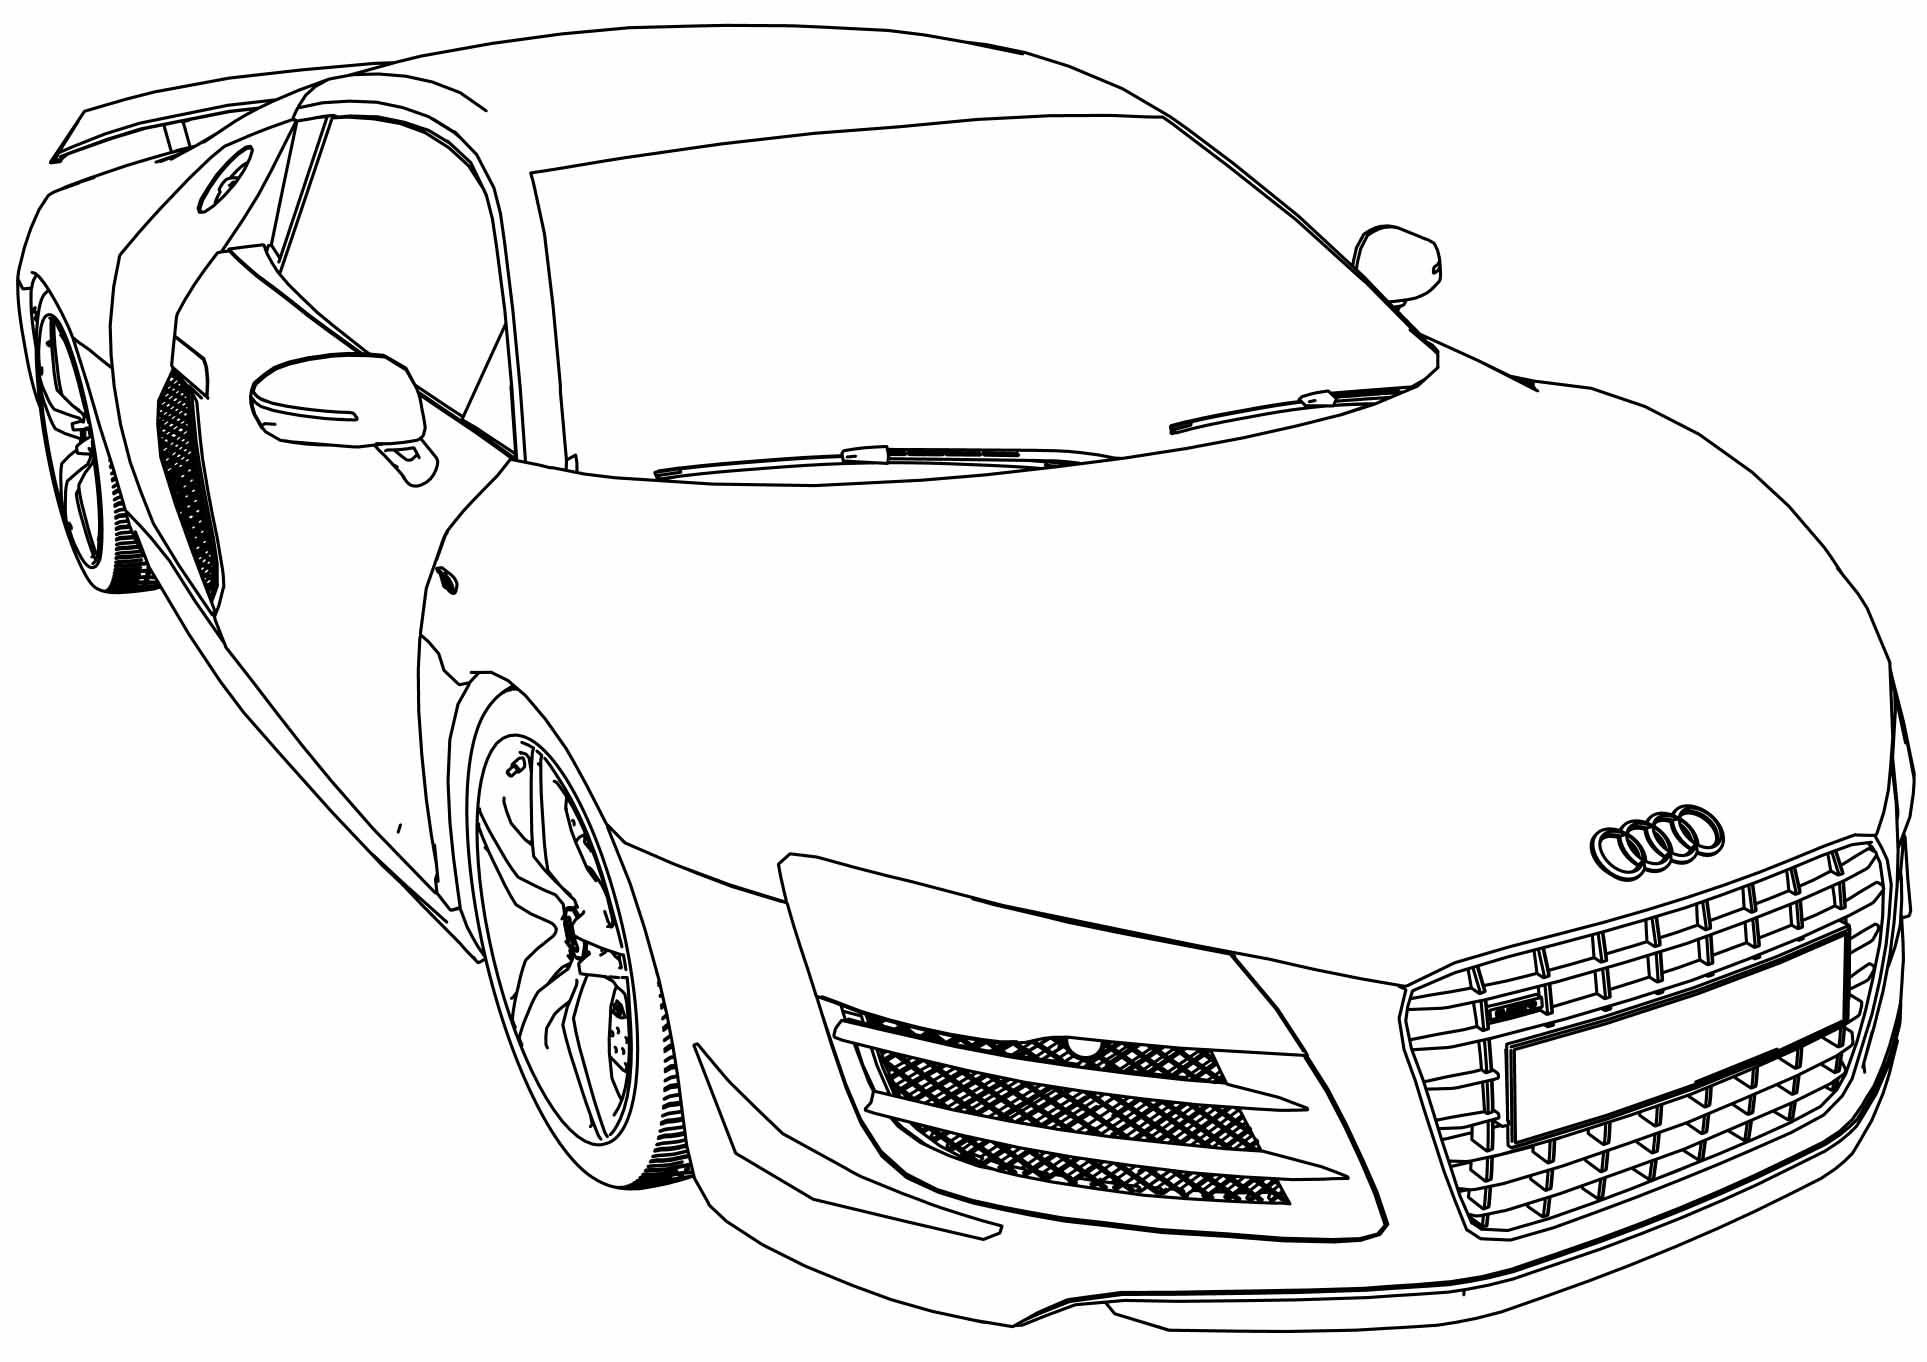 Nice Audi R8 Gt Car Coloring Page Cars Coloring Pages Audi R8 Car Drawings